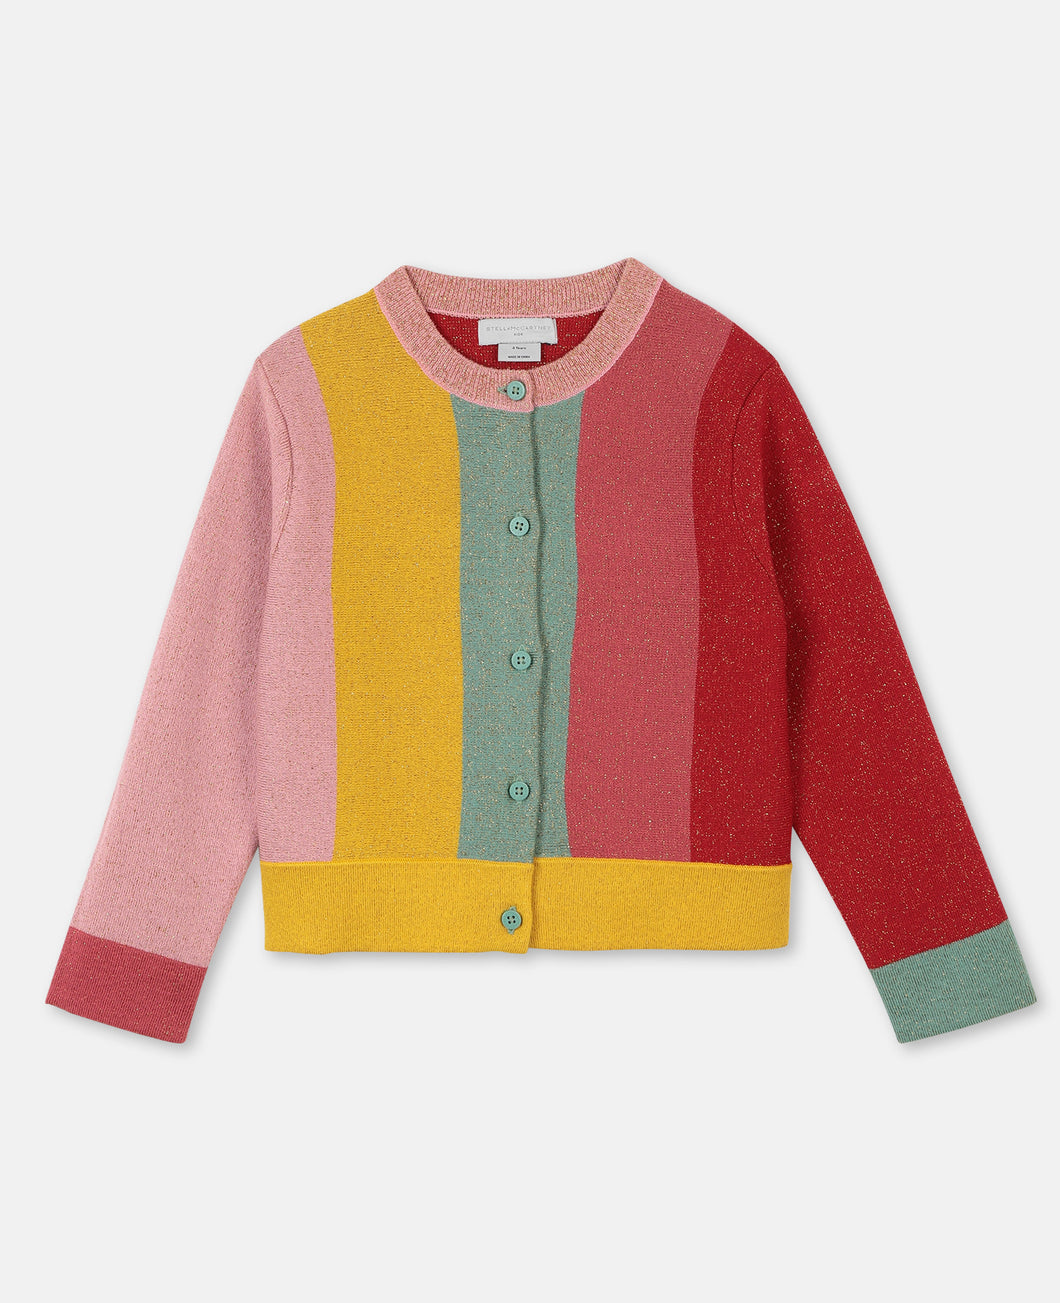 Lurex Knit SMC Baby Cardigan